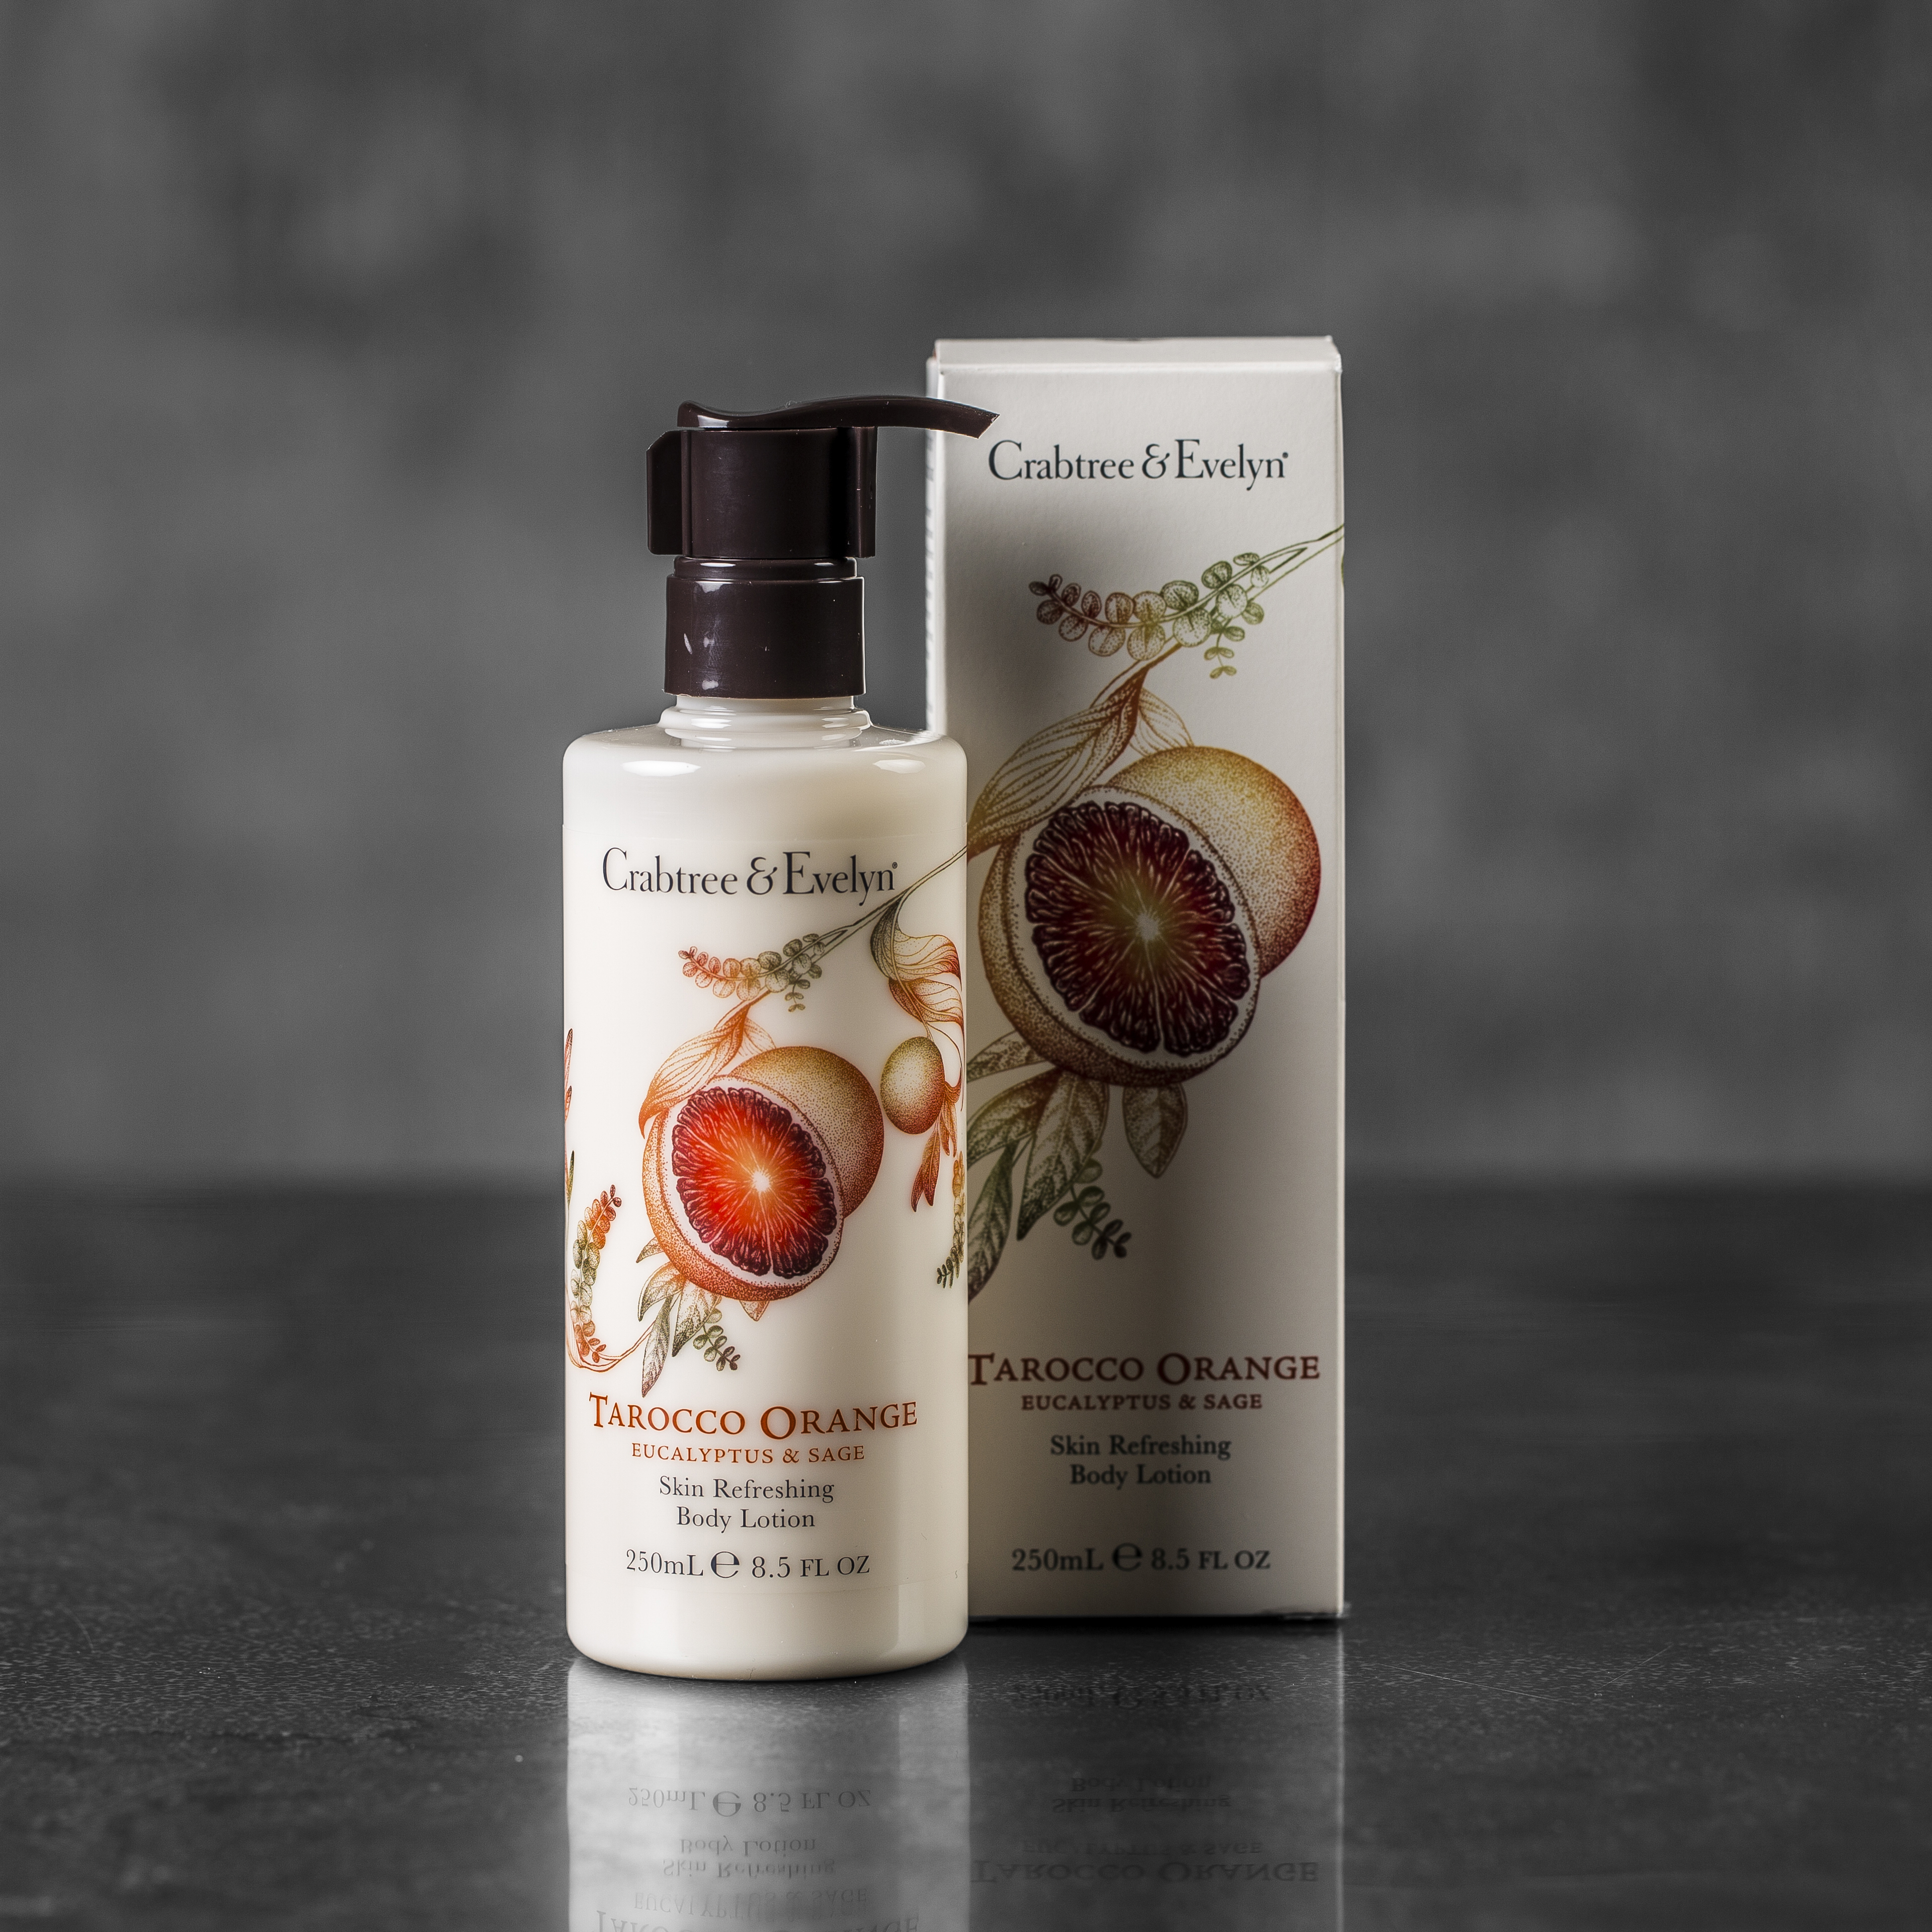 Crabtree &Evelyn body lotion